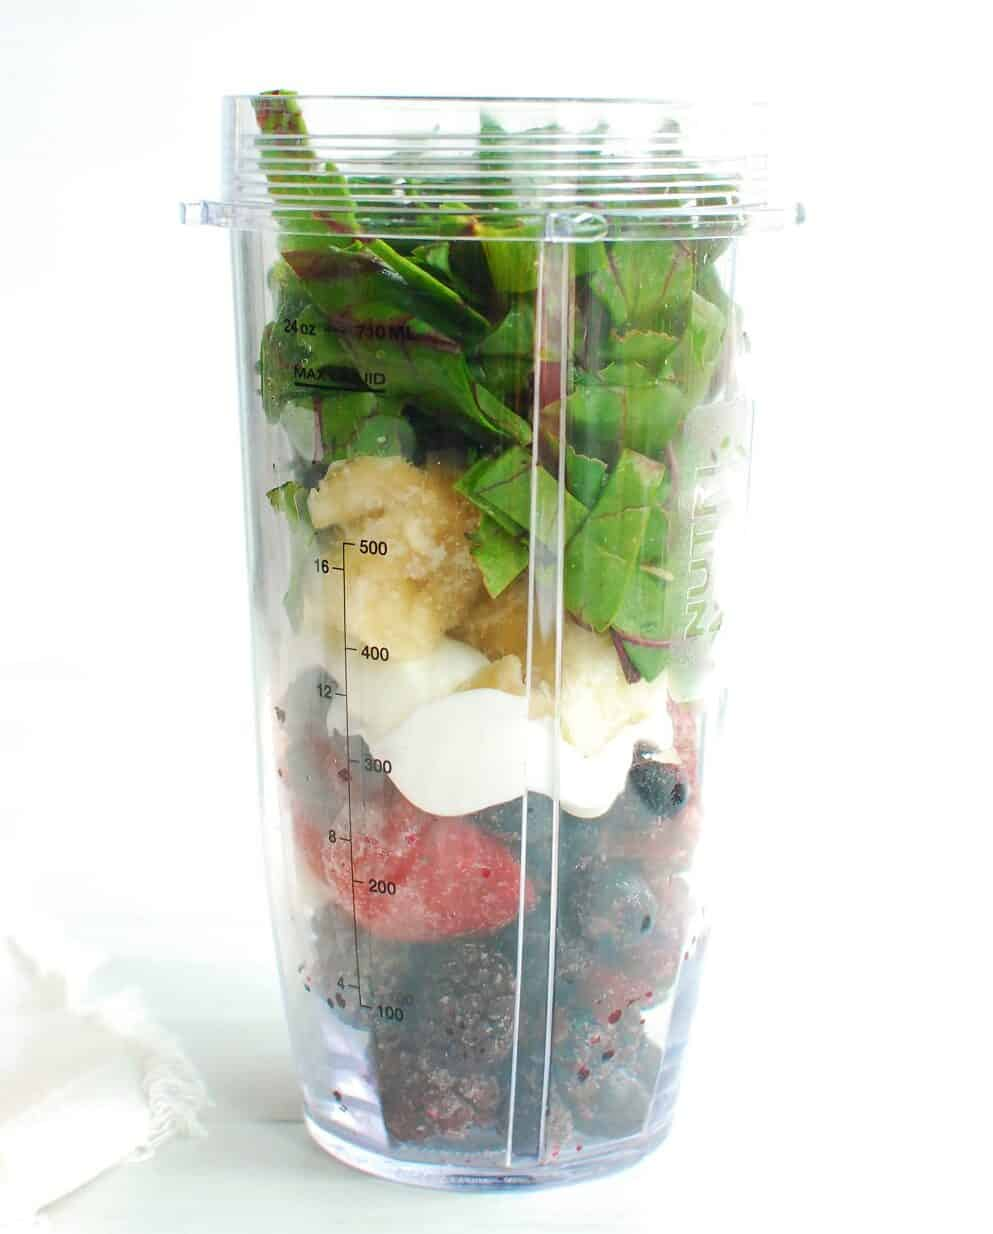 A blender cup full of ingredients to make a smoothie